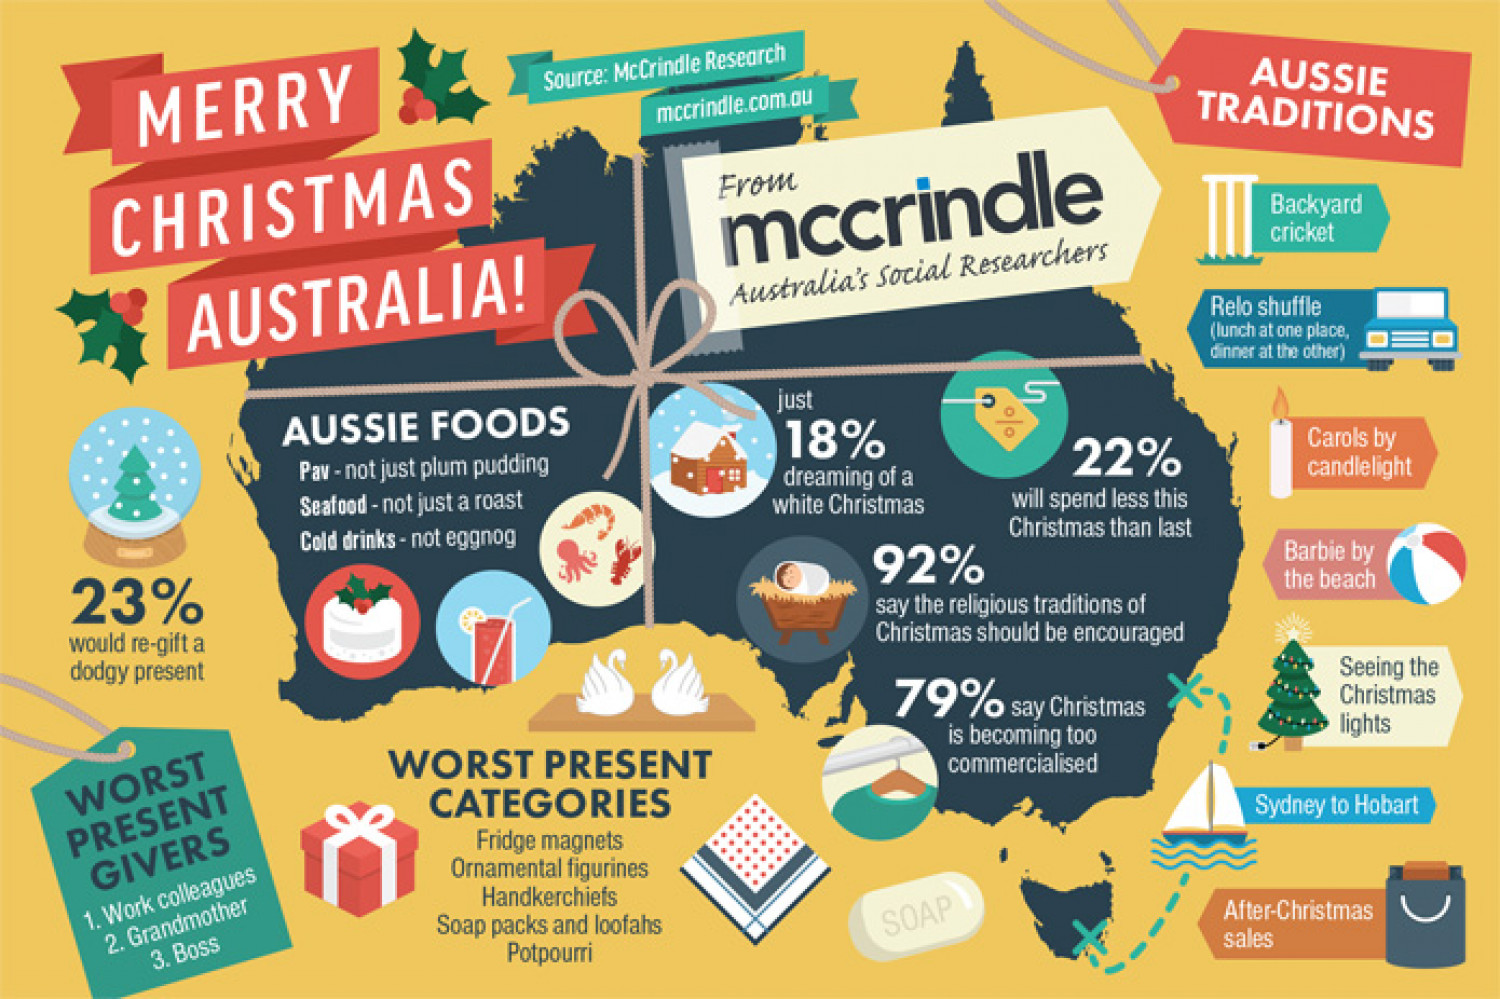 Fun Facts About Christmas In Australia